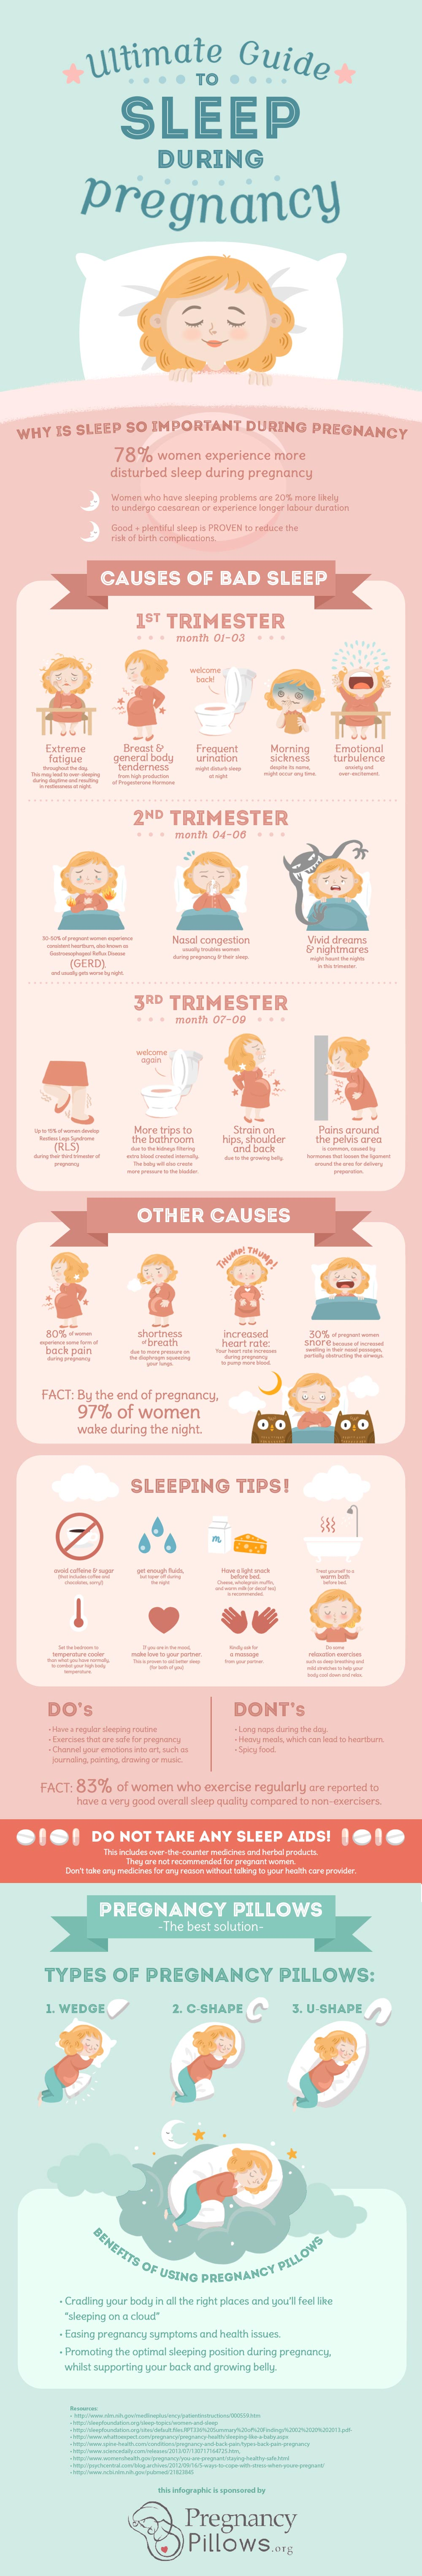 Pregnant and wondering how to get a good night's rest? Read more at happyhumanpacifier.com | howtosleepbetterpregnant | pregnancypillows | pregnancypillowsinfographic |